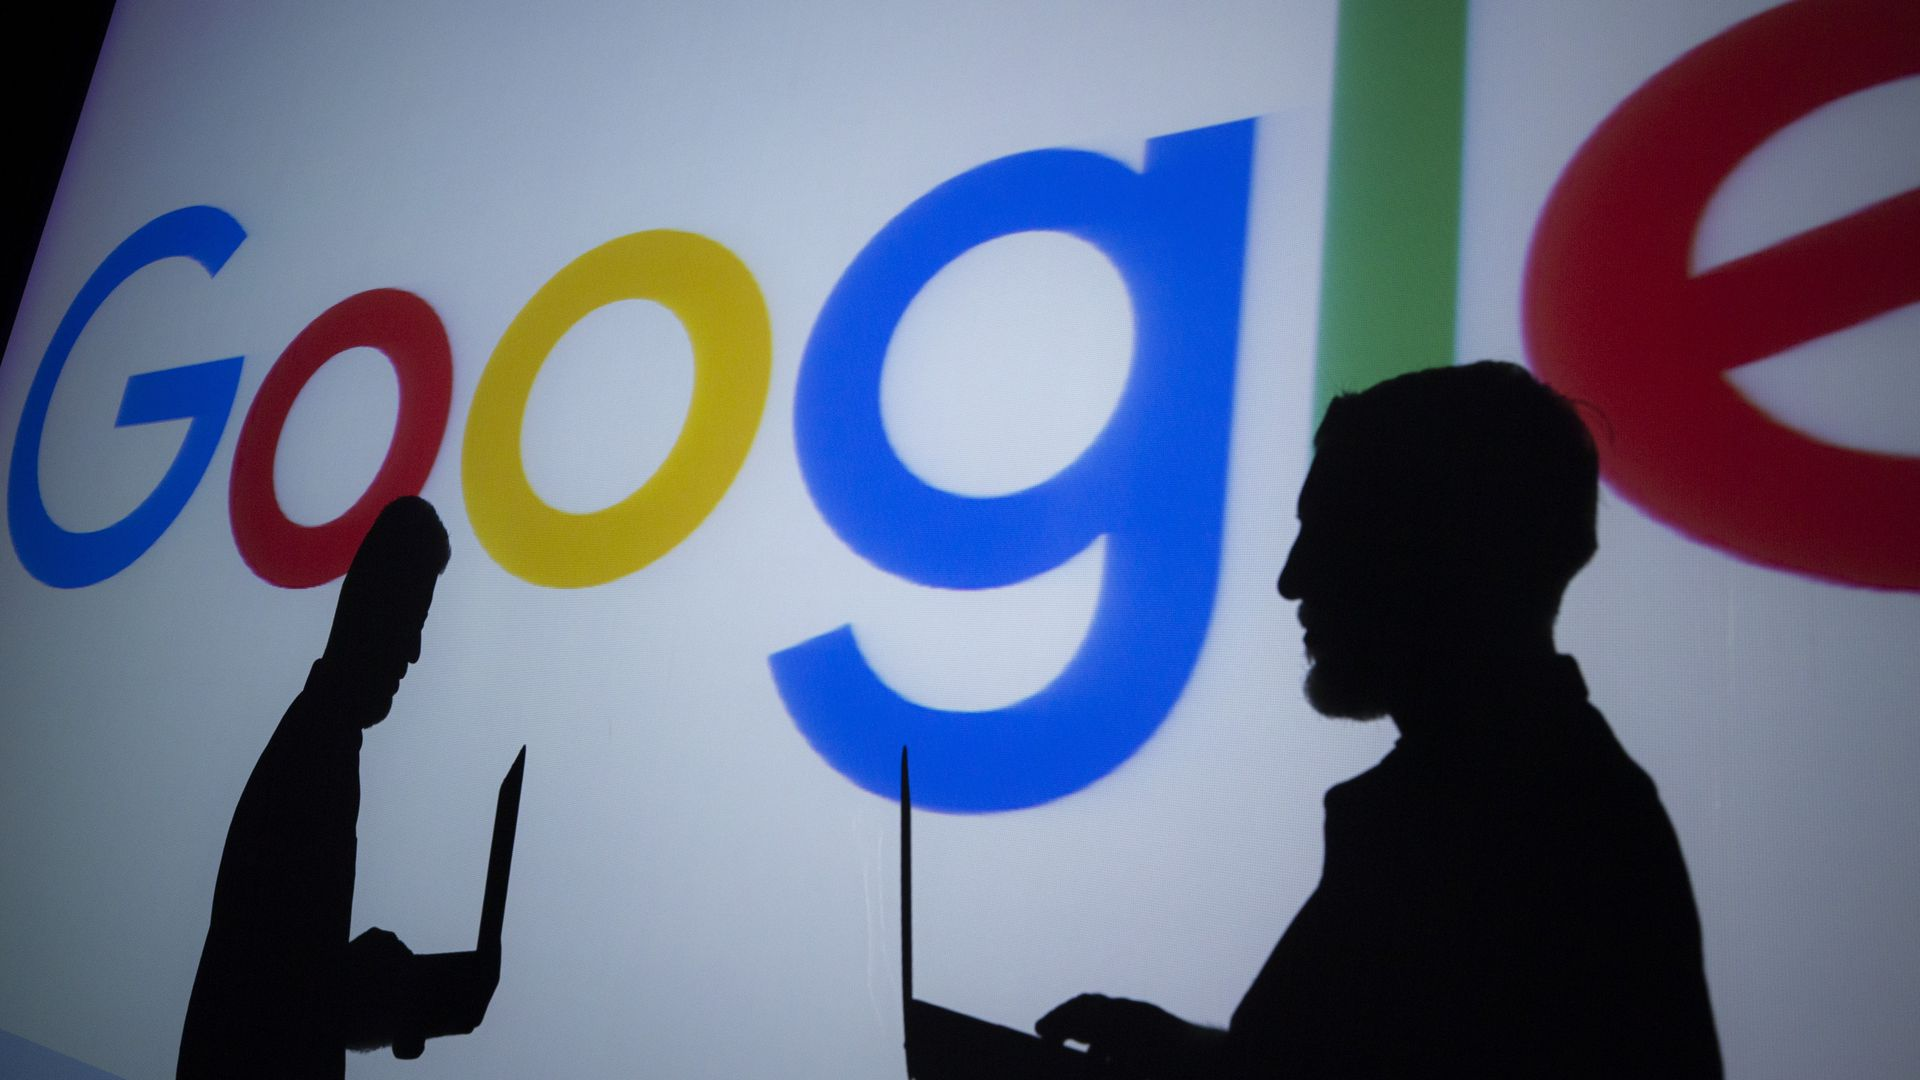 Exclusive: Google funds creation of new local media companies